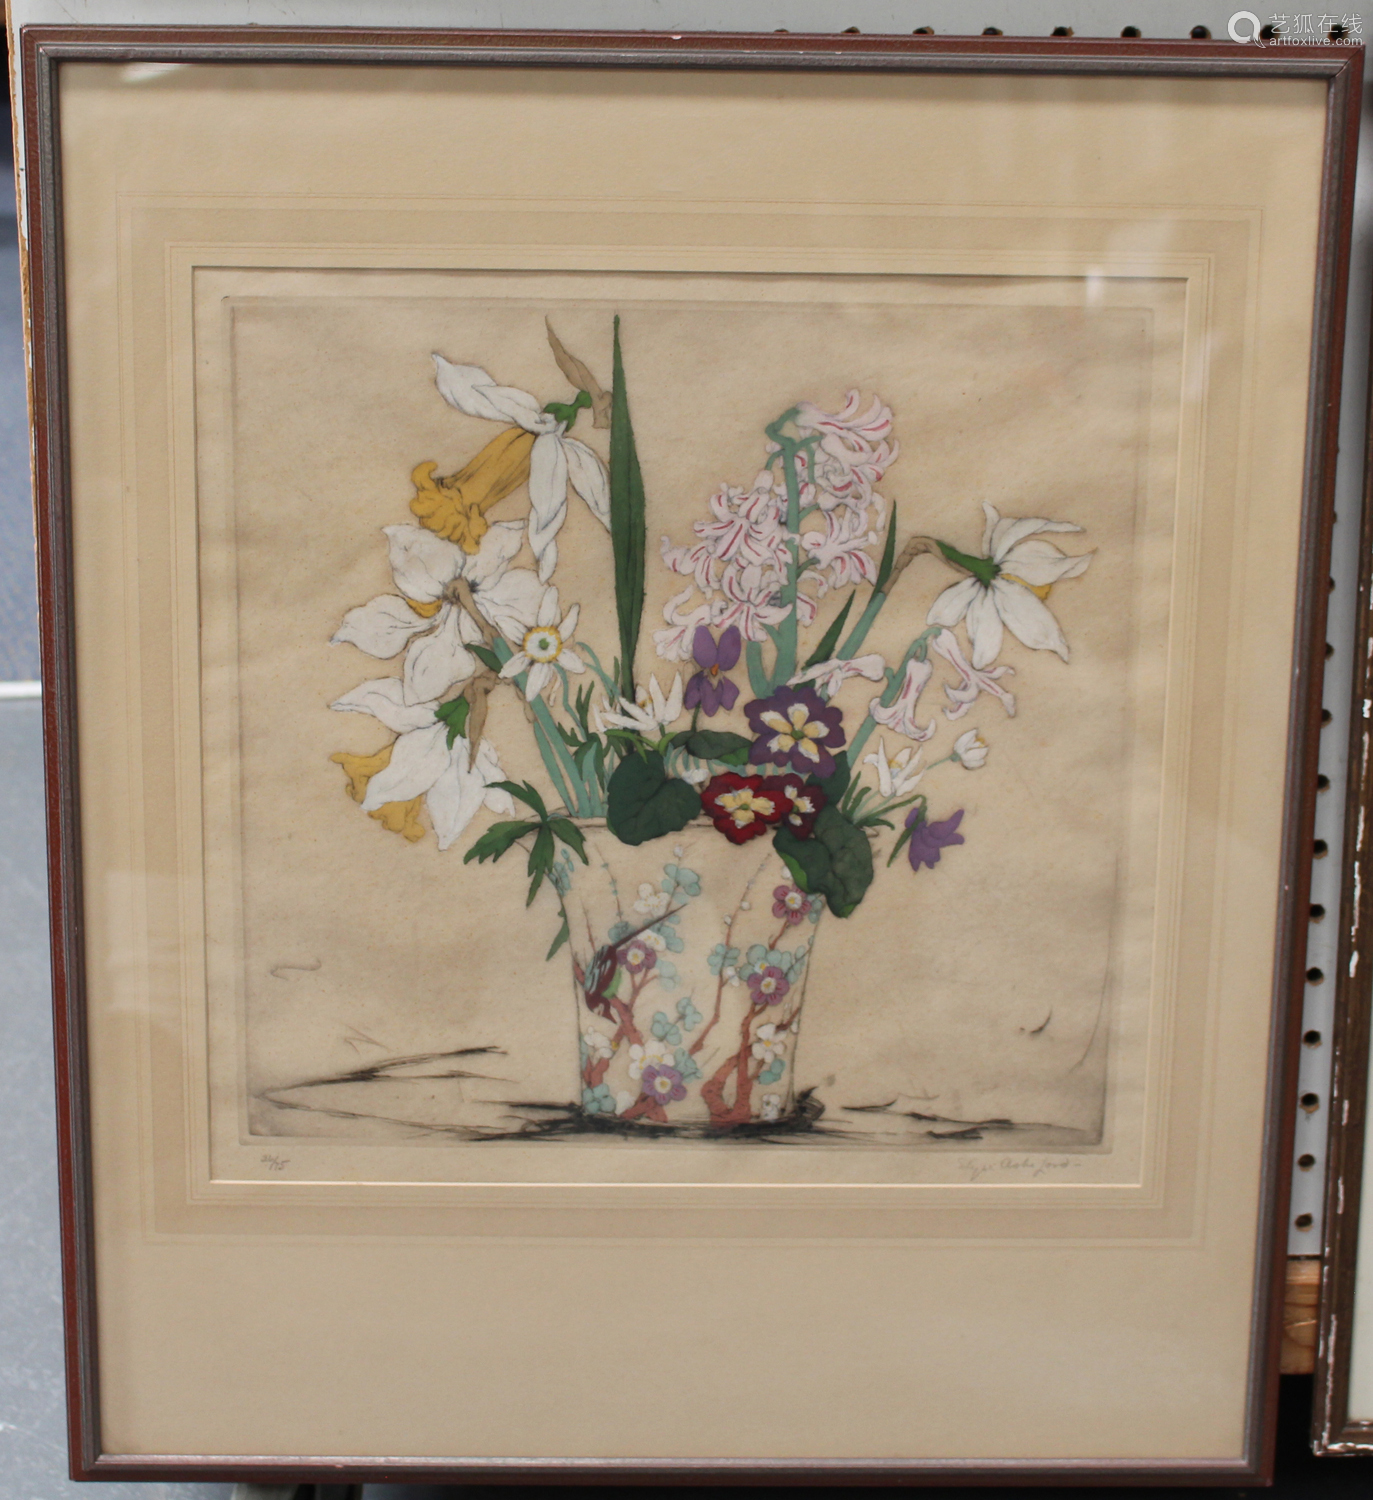 Elyse Ashe Lord - Spring Flowers in a Chinese Vase, early 20th century etching with hand-